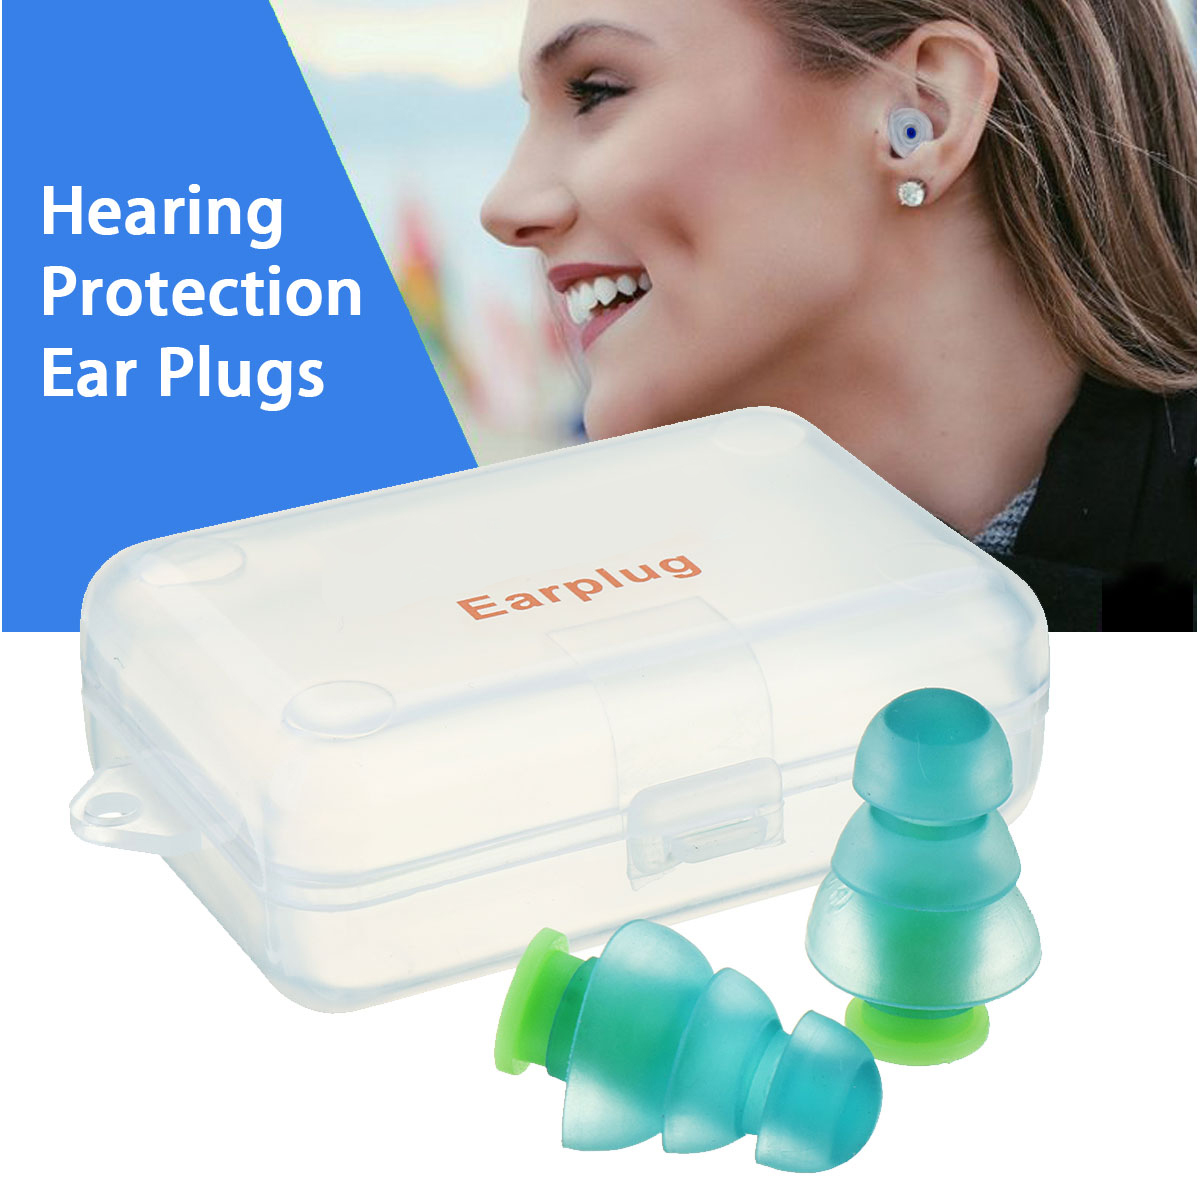 Safurance 1 Pair Noise Cancelling Hearing Protection Earplugs For Concerts Musician Motorcycles Reusable Silicone Ear plugs 1 pair ear plug silicone ear plugs anti noise earplugs for sleeping ear protector motorcycle drummer musician concerts earbuds